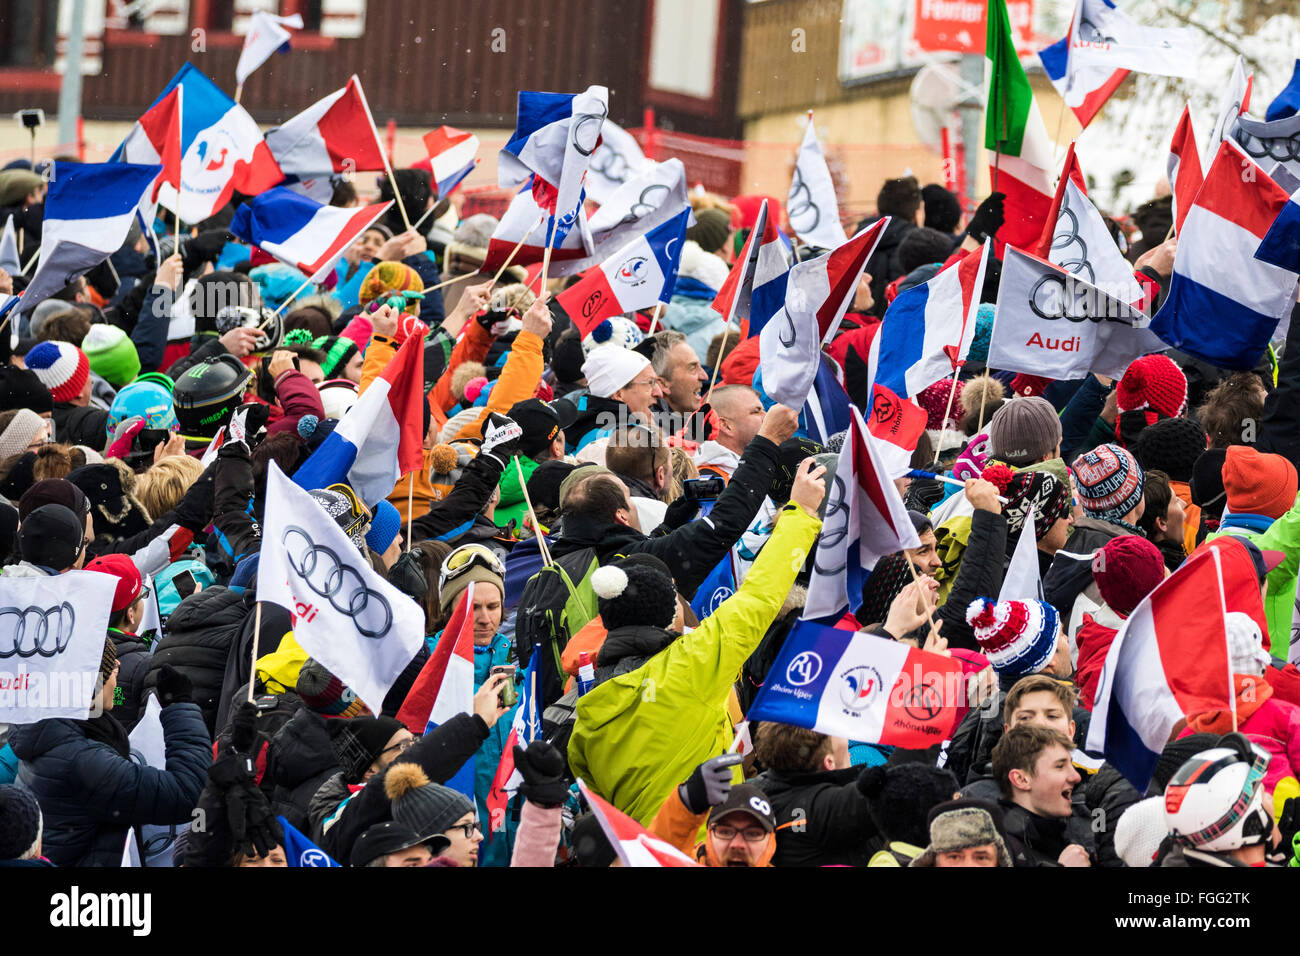 Chamonix, France. 19th February, 2016. Fans react to the arrival of Alexis Pinterault at the finish of the men's - Stock Image